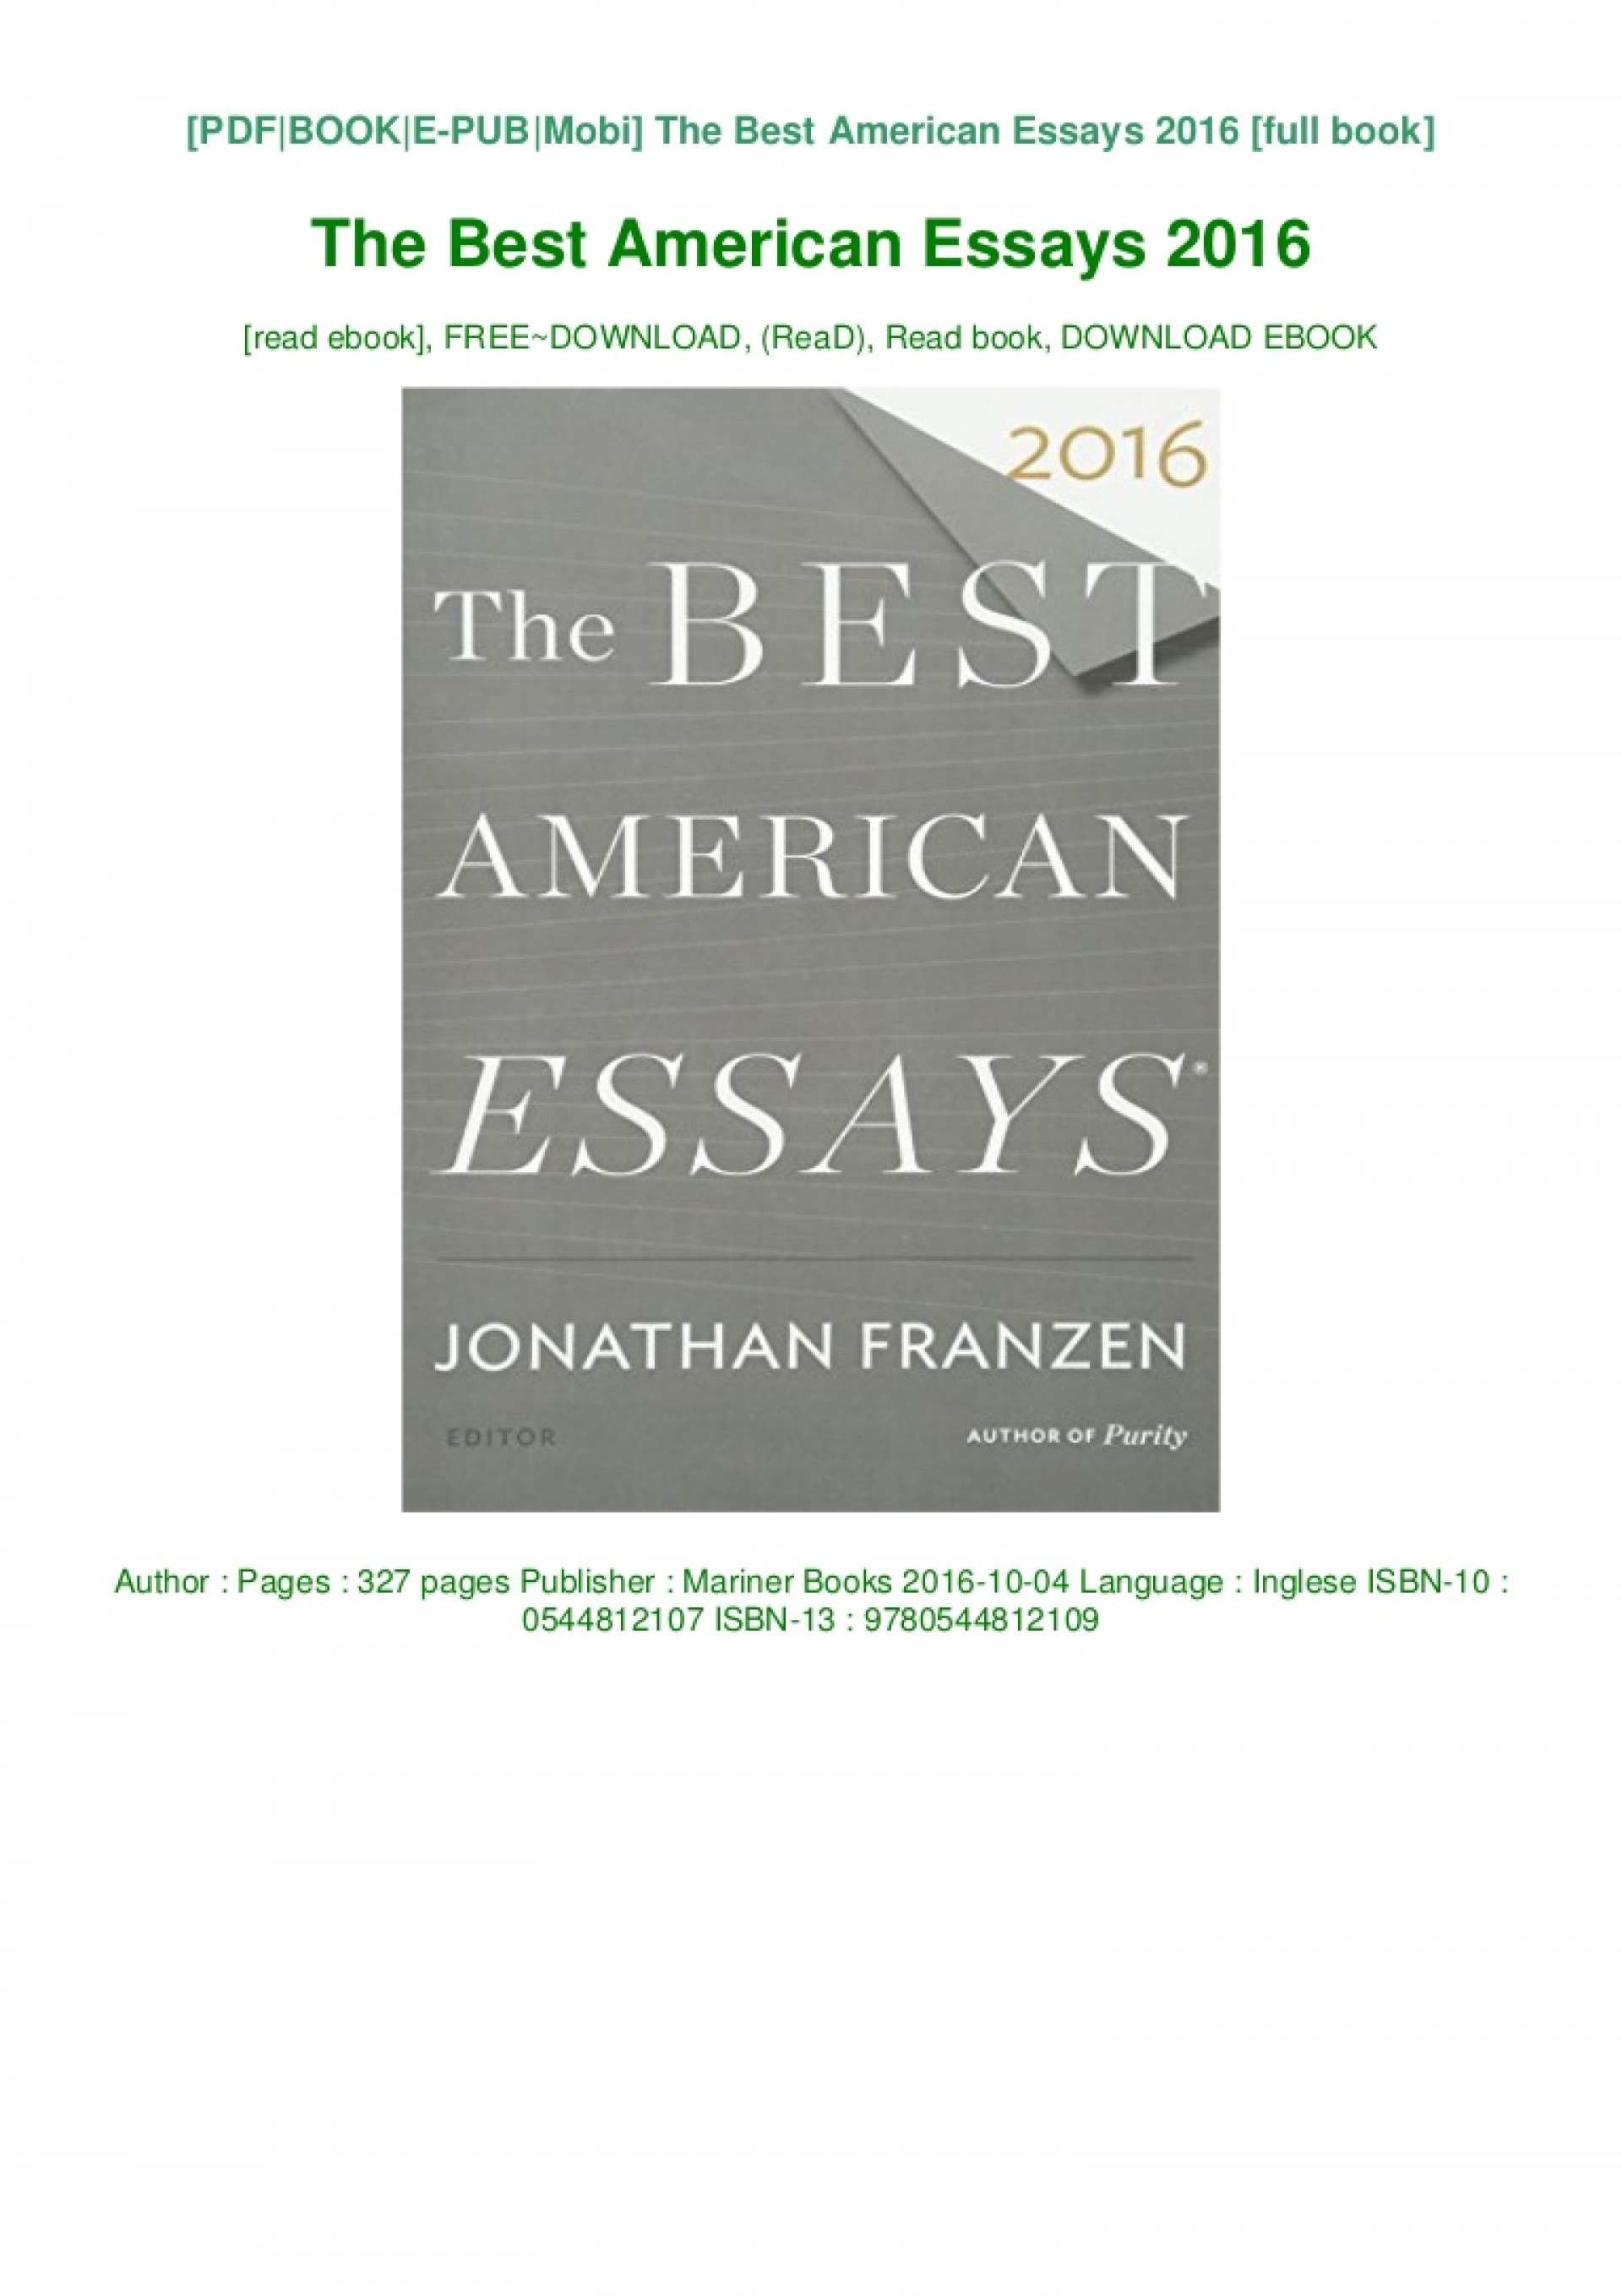 014 The Best American Essays Essay Example Download Pdf Epub Audiobook Ebook Thumbnail Wonderful 2018 List 2017 Free 1920